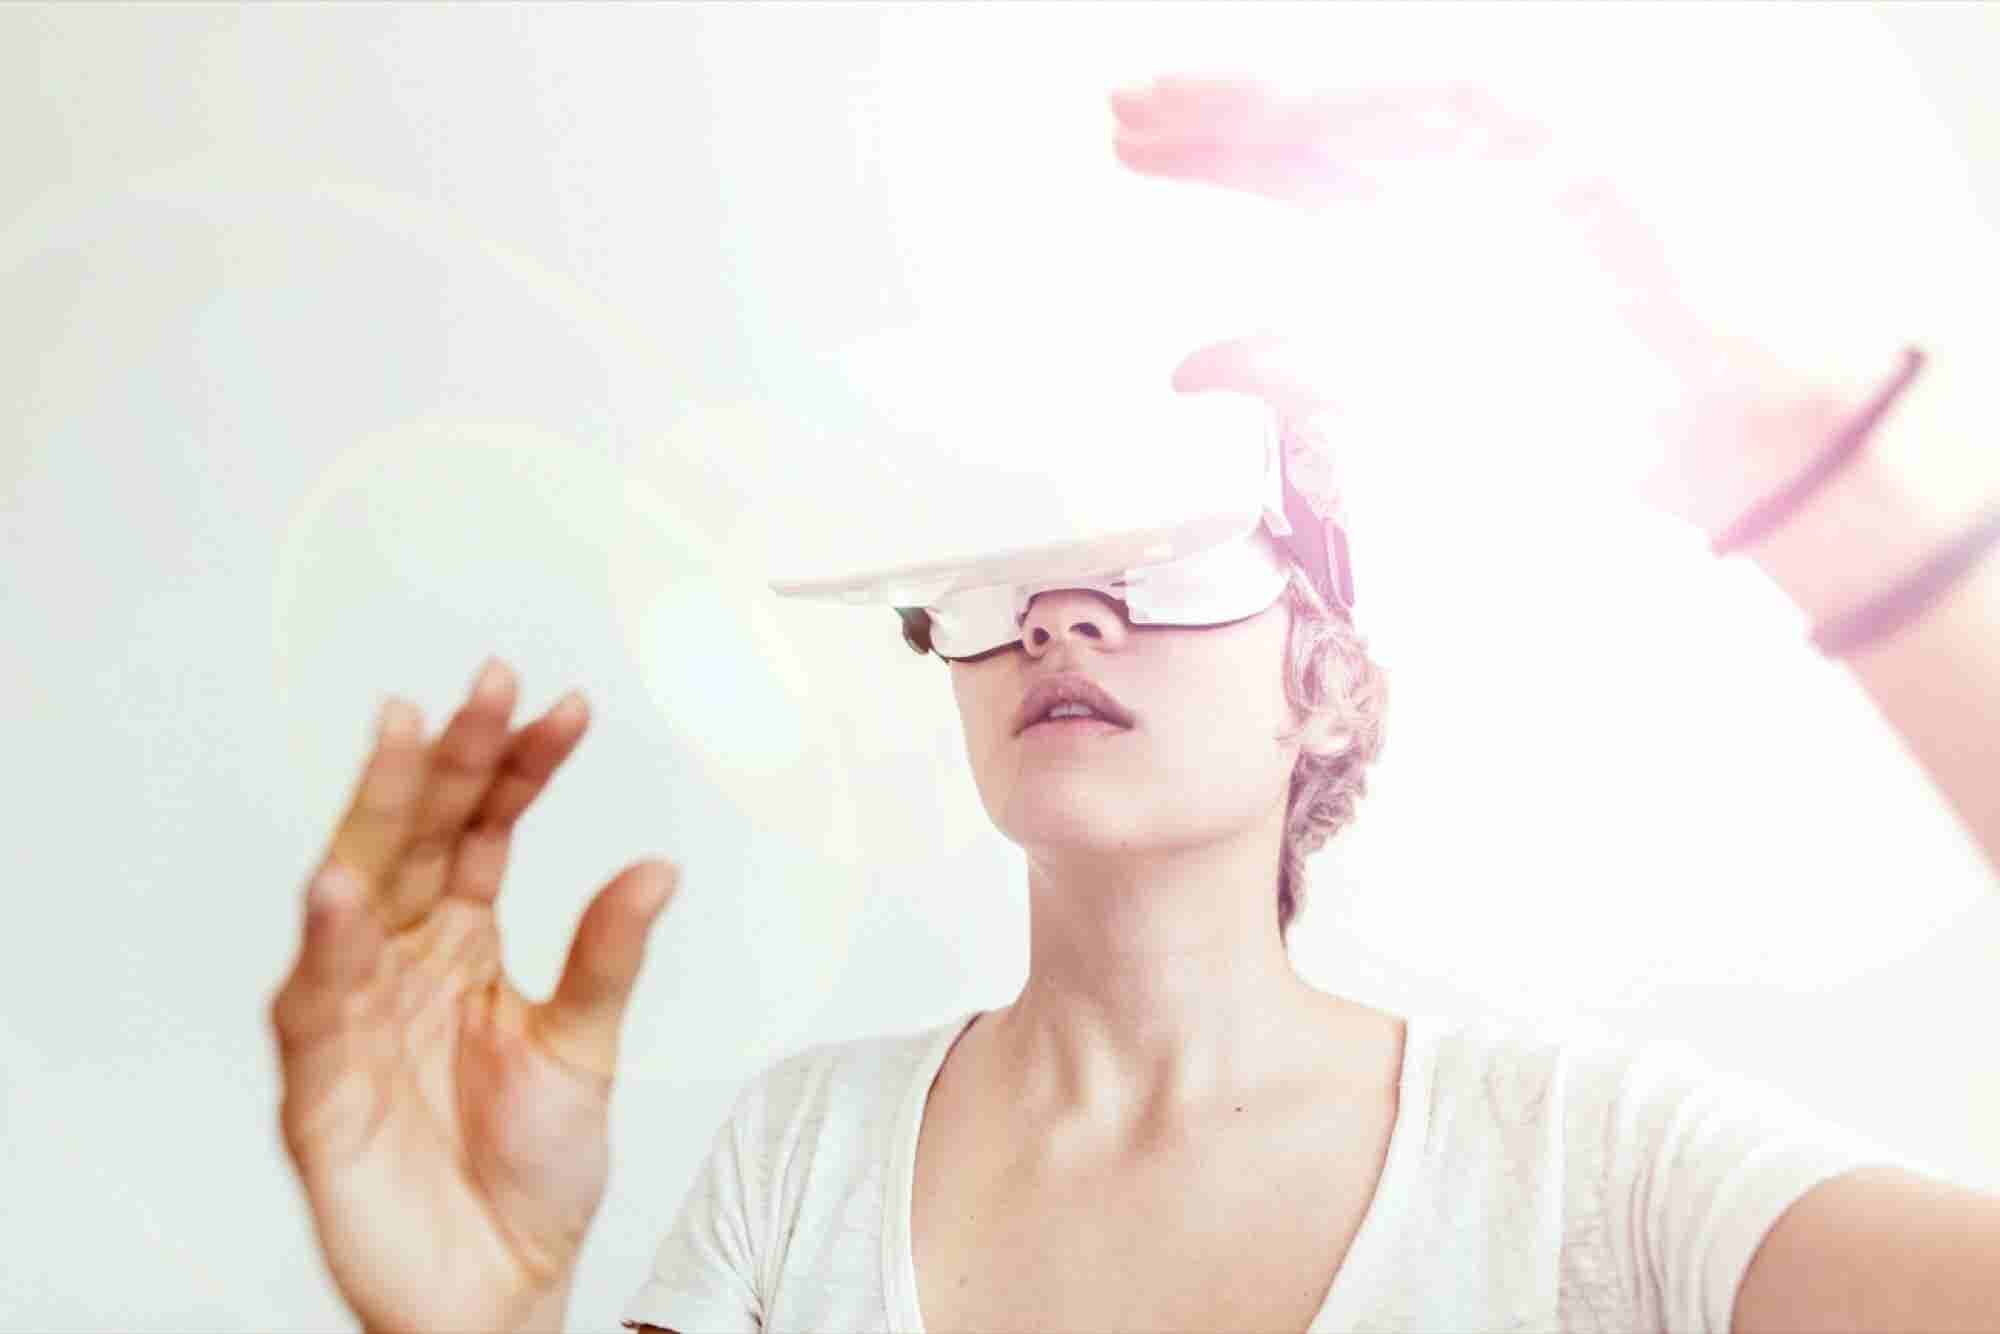 5 VR and AR Startups Ready for Explosive Growth